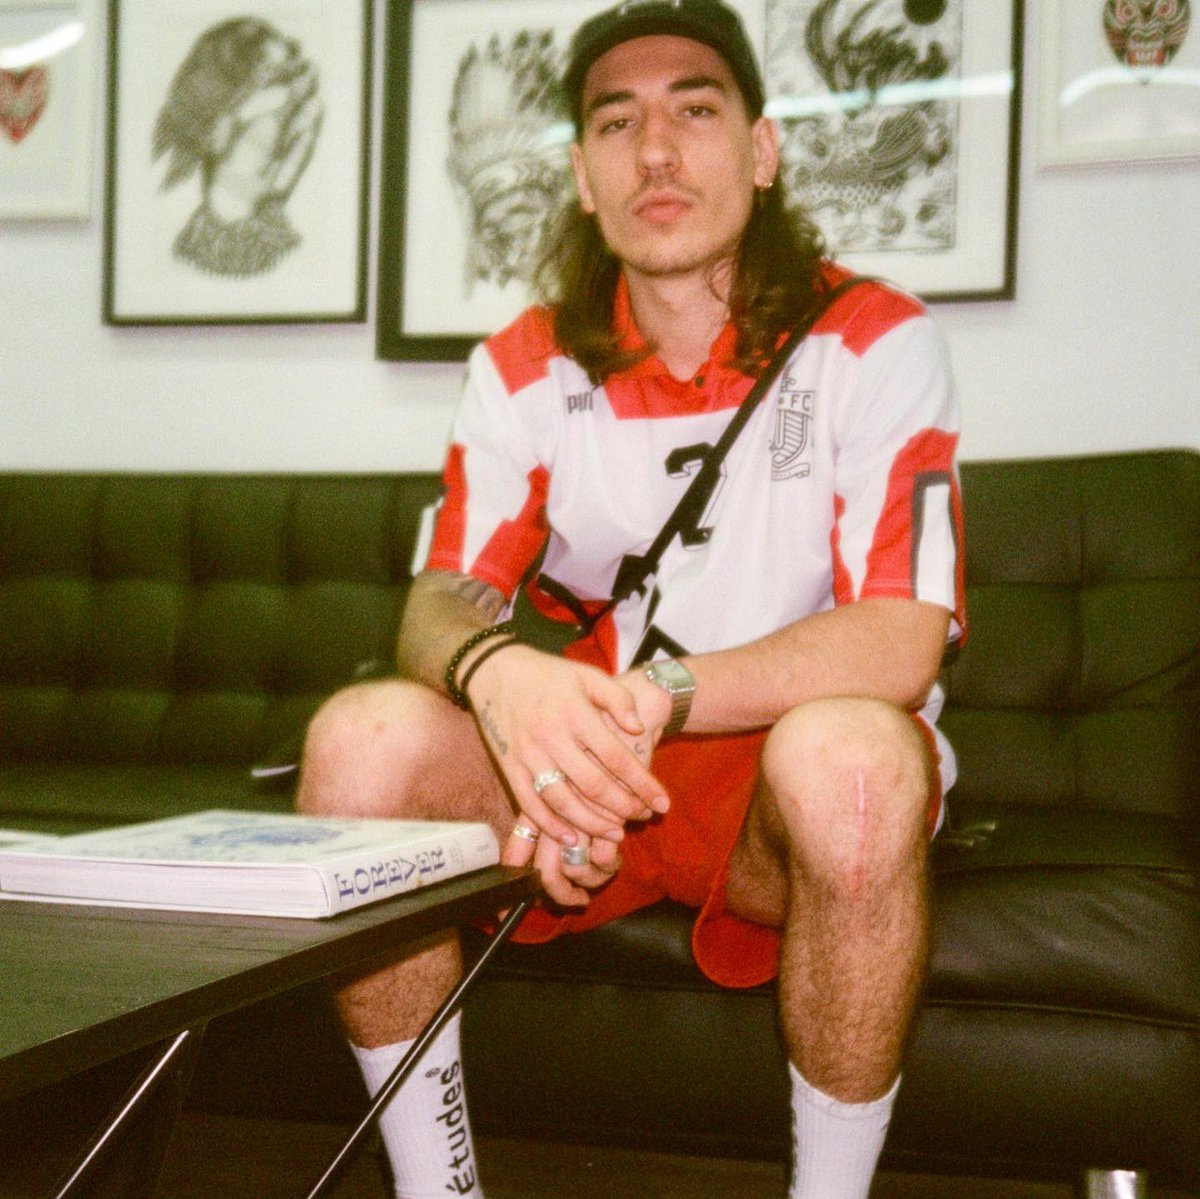 Hector Bellerin was snapped wearing @Killa_Villa_ and this just added to our love for him. This is why he will rule the world. theculturedivision.com/why-hector-bel…